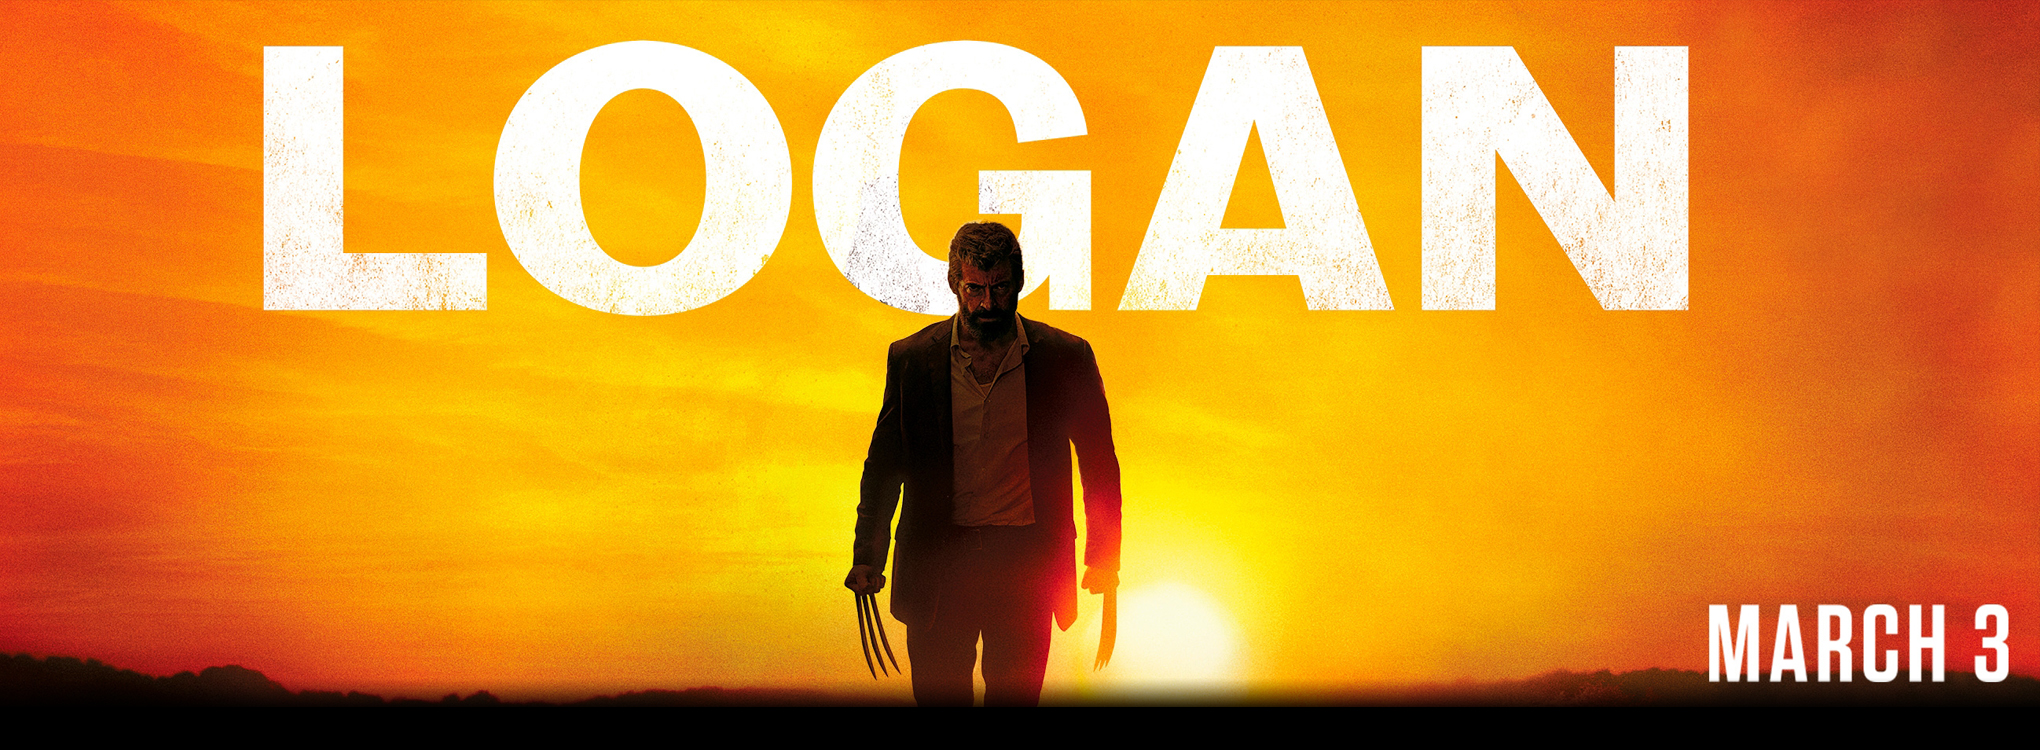 Logan premieres Thursday, March 2 - tickets on sale now!